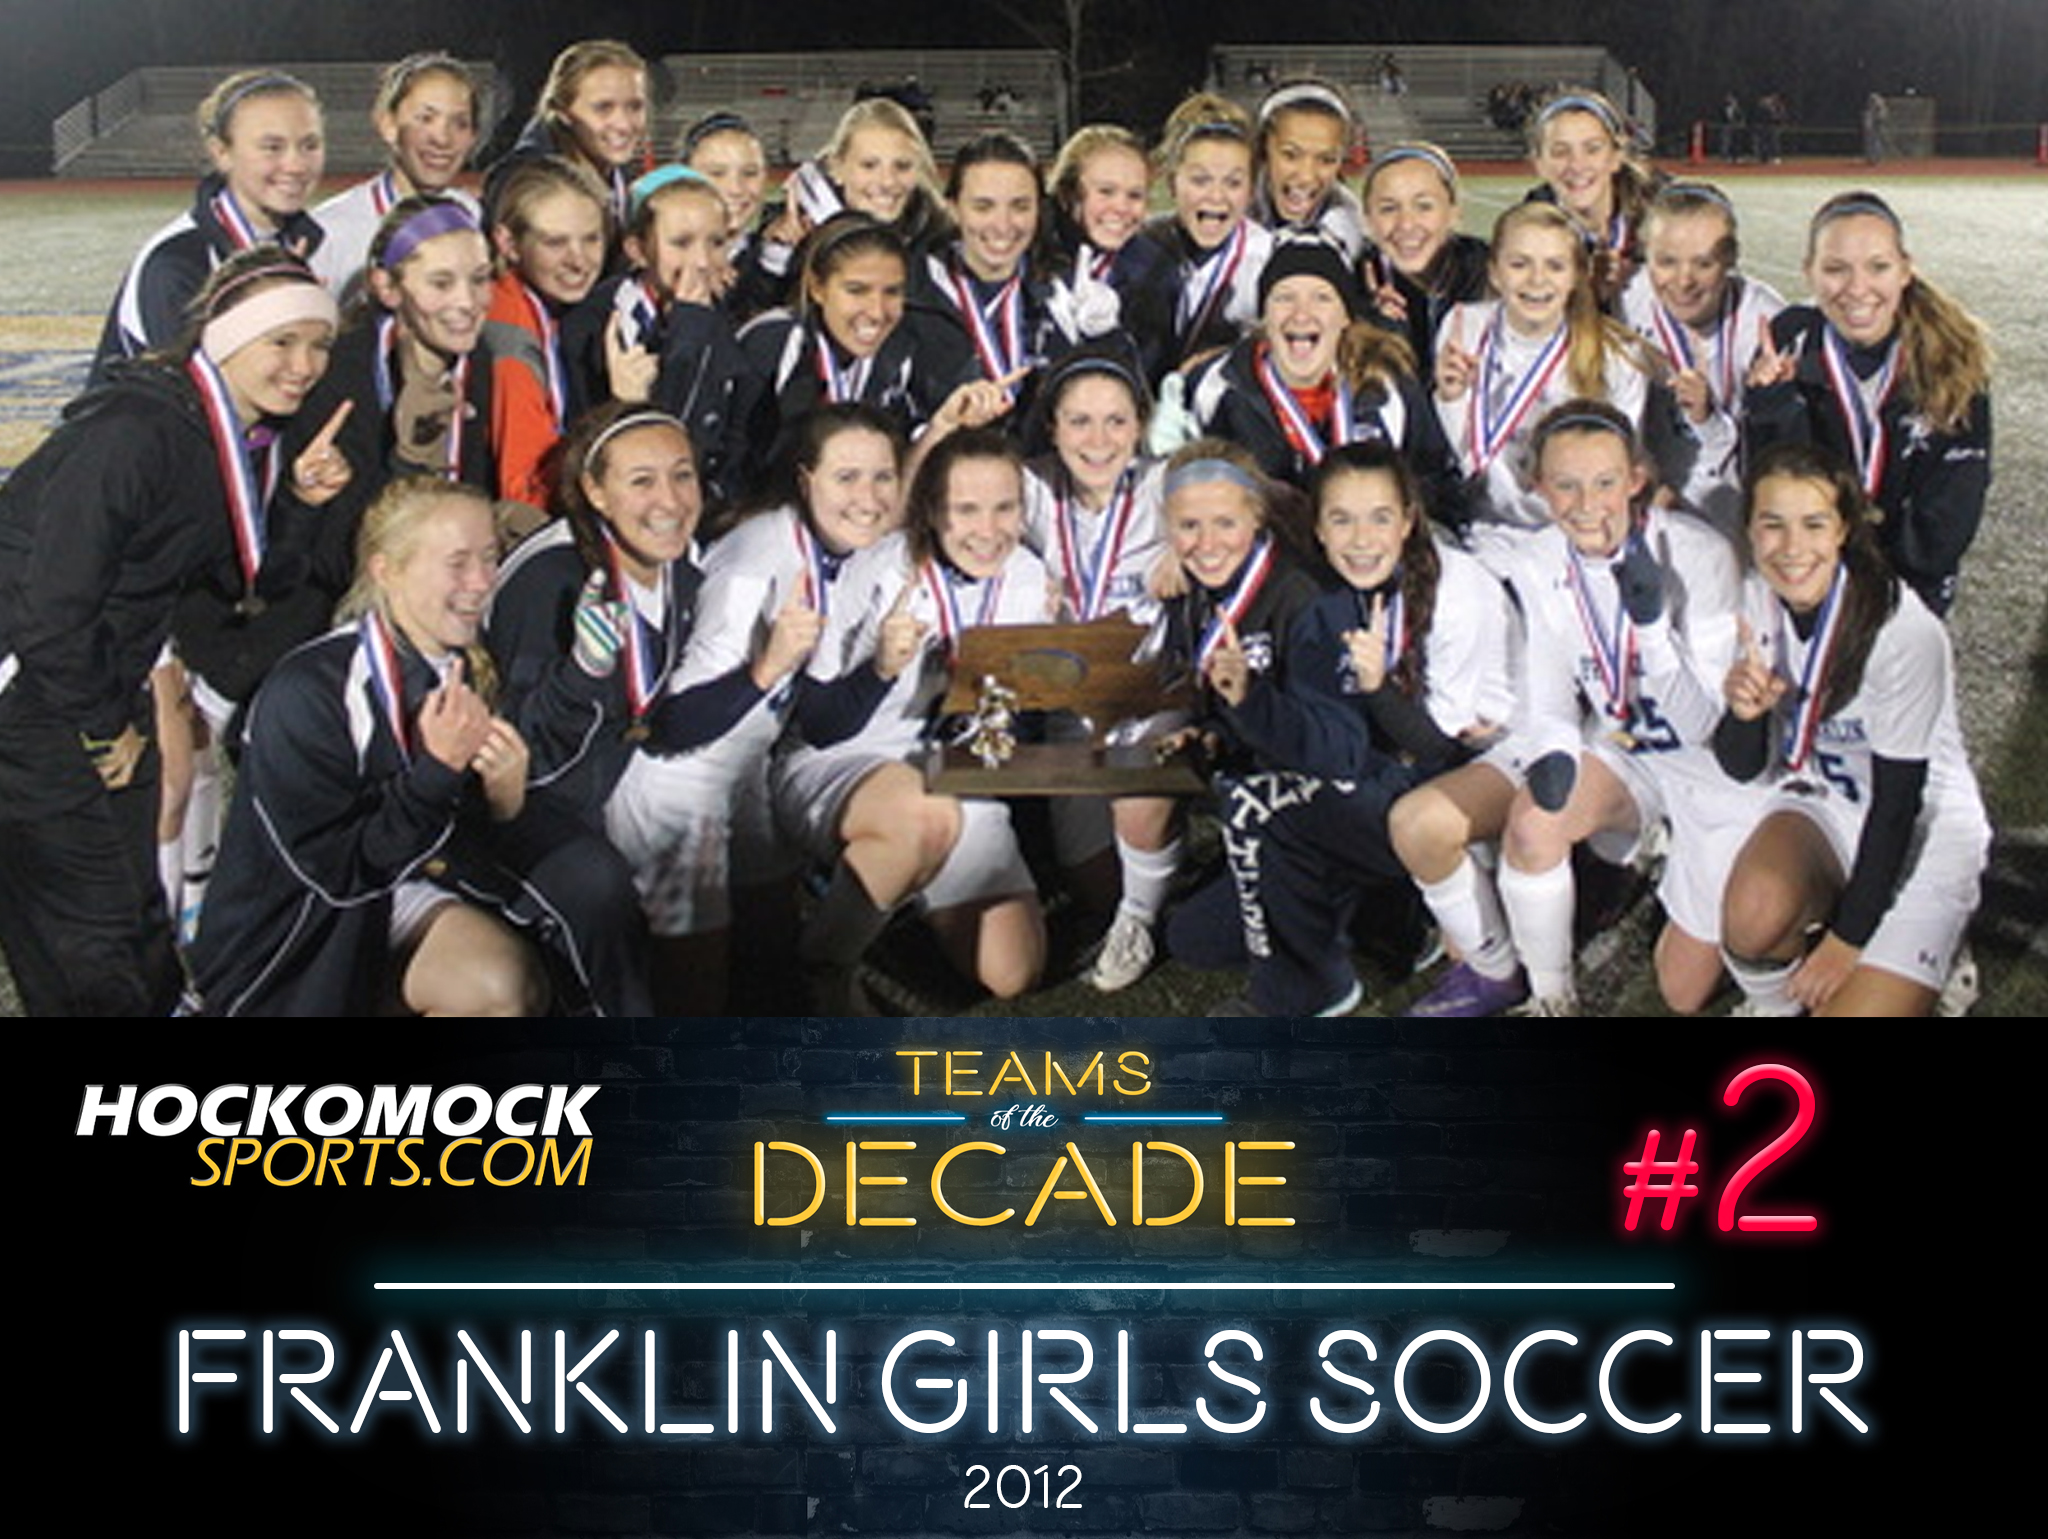 HockomockSports.com: Teams of the Decade #2: 2012 Franklin Girls Soccer